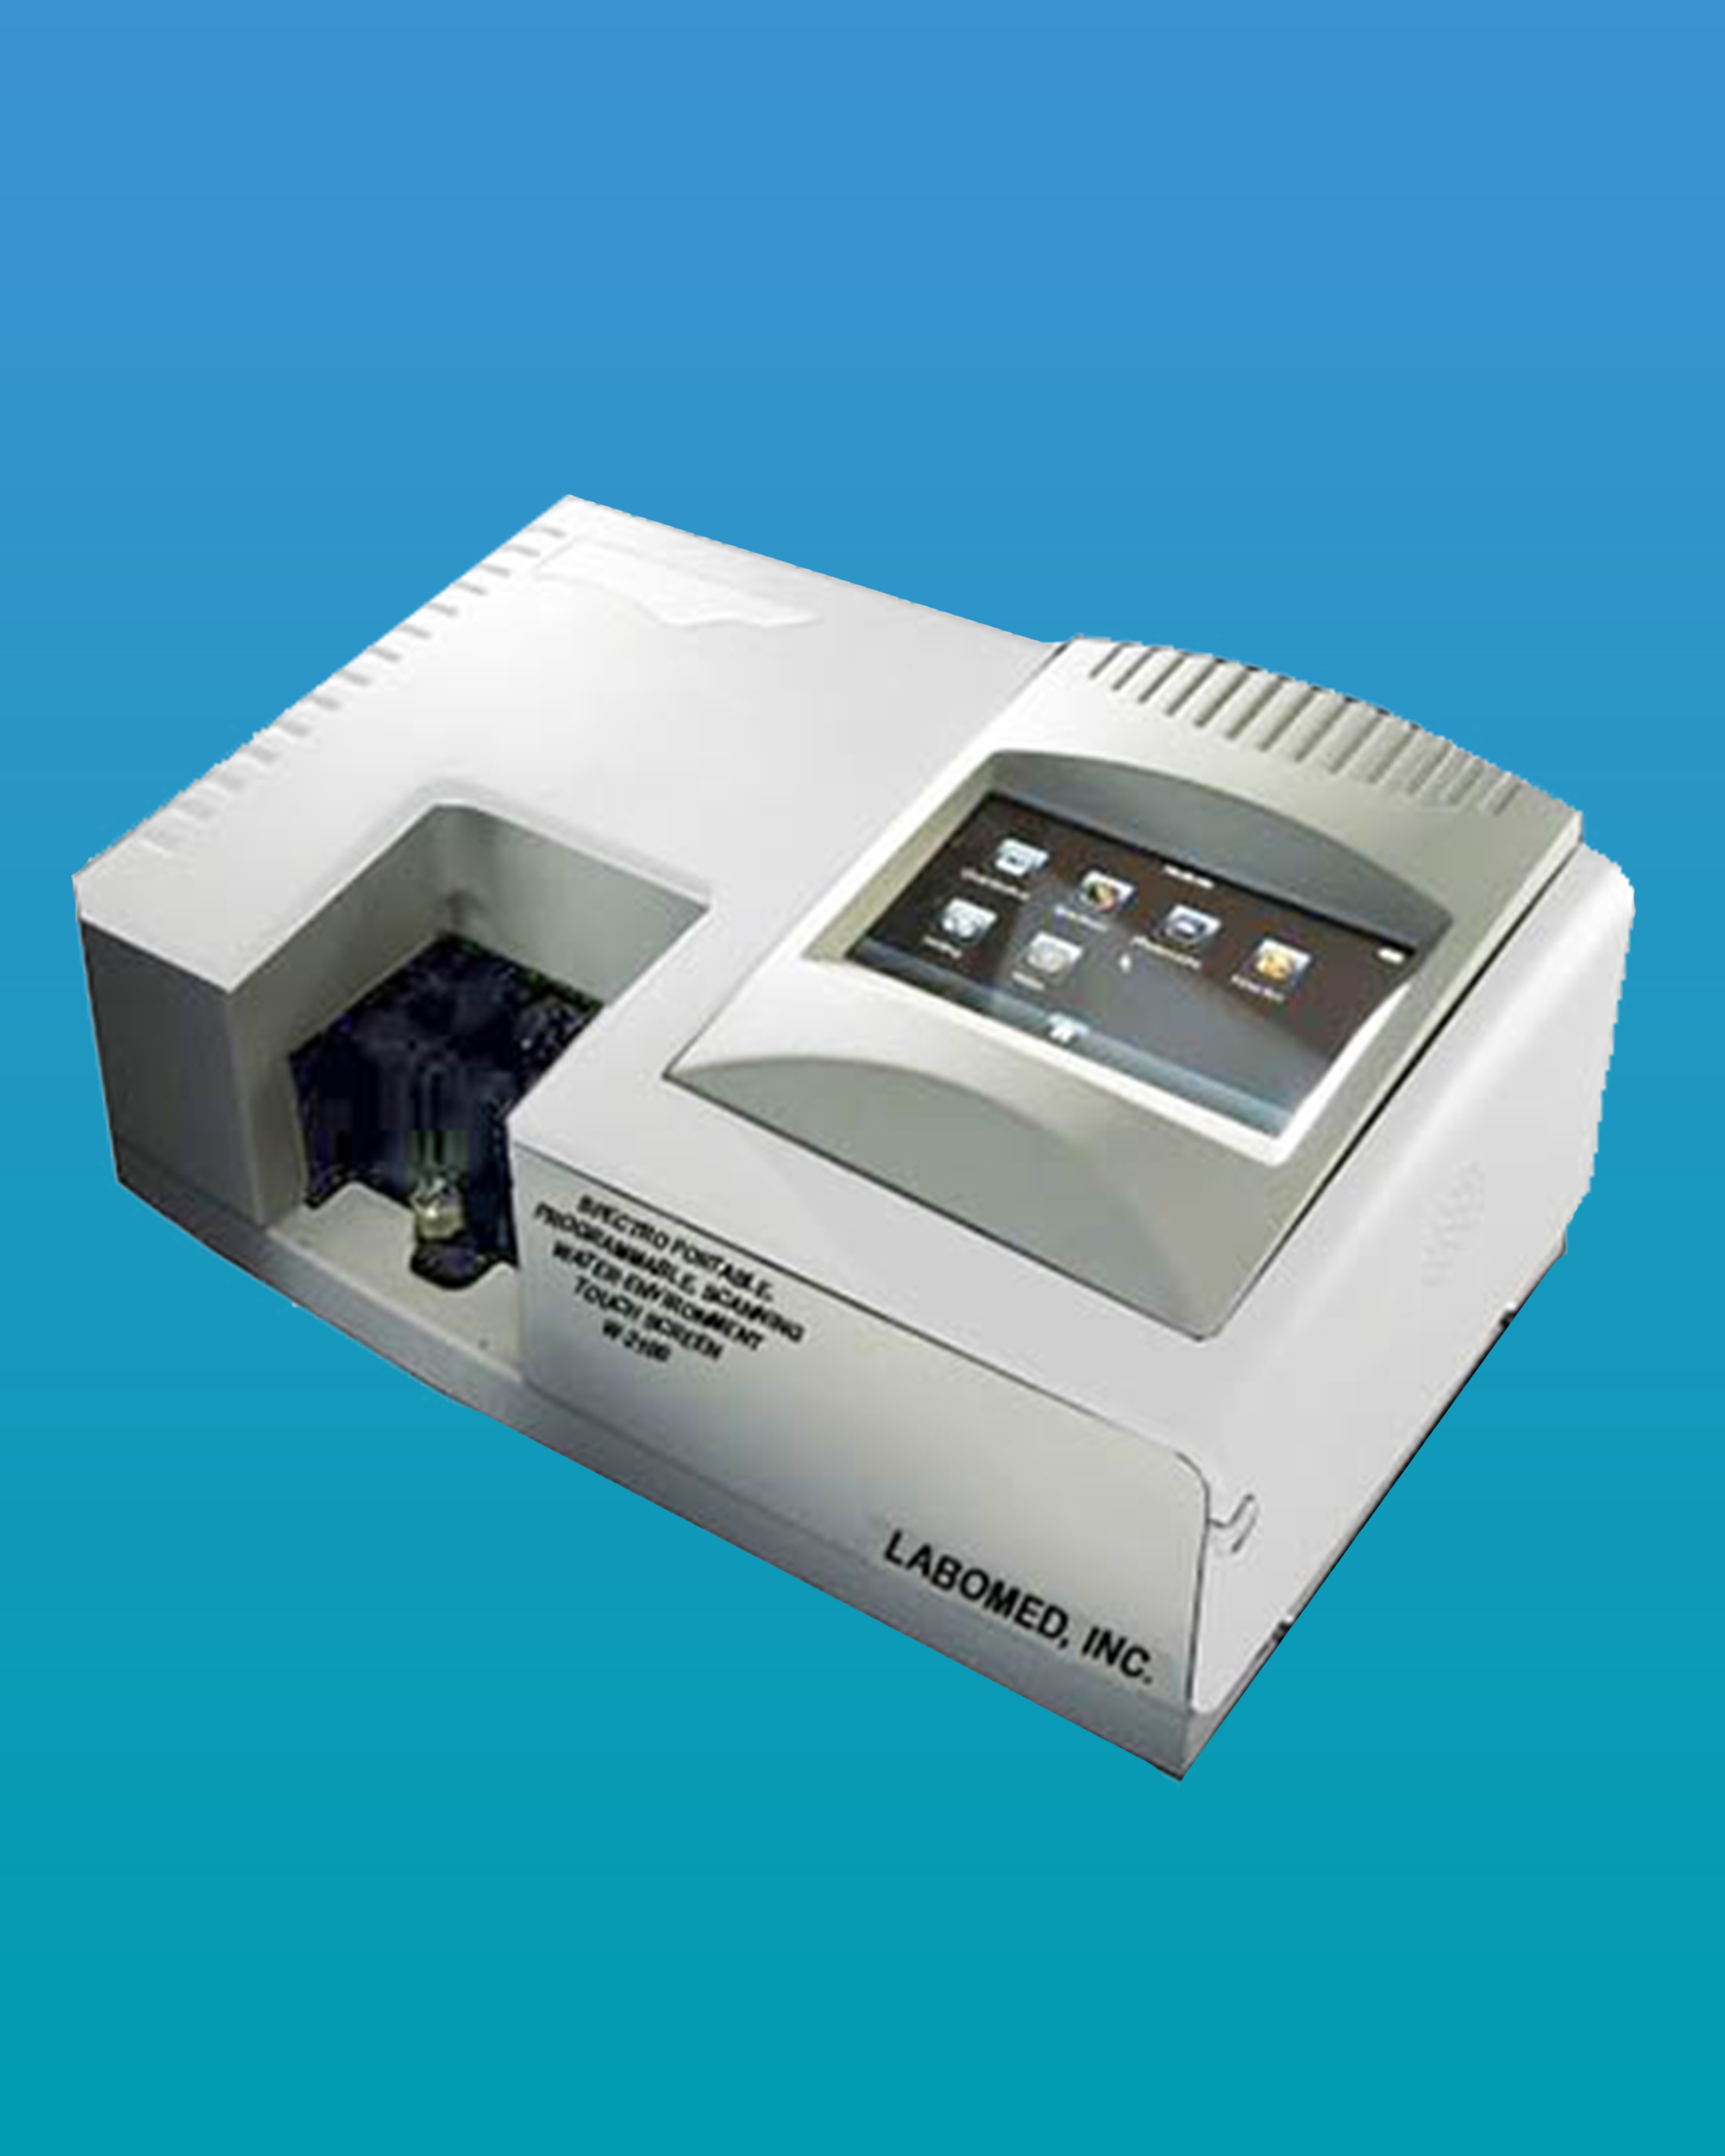 [W-2100] Water Testing Spectrophotometer Programmable, Portable, Scanning, Touch Screen